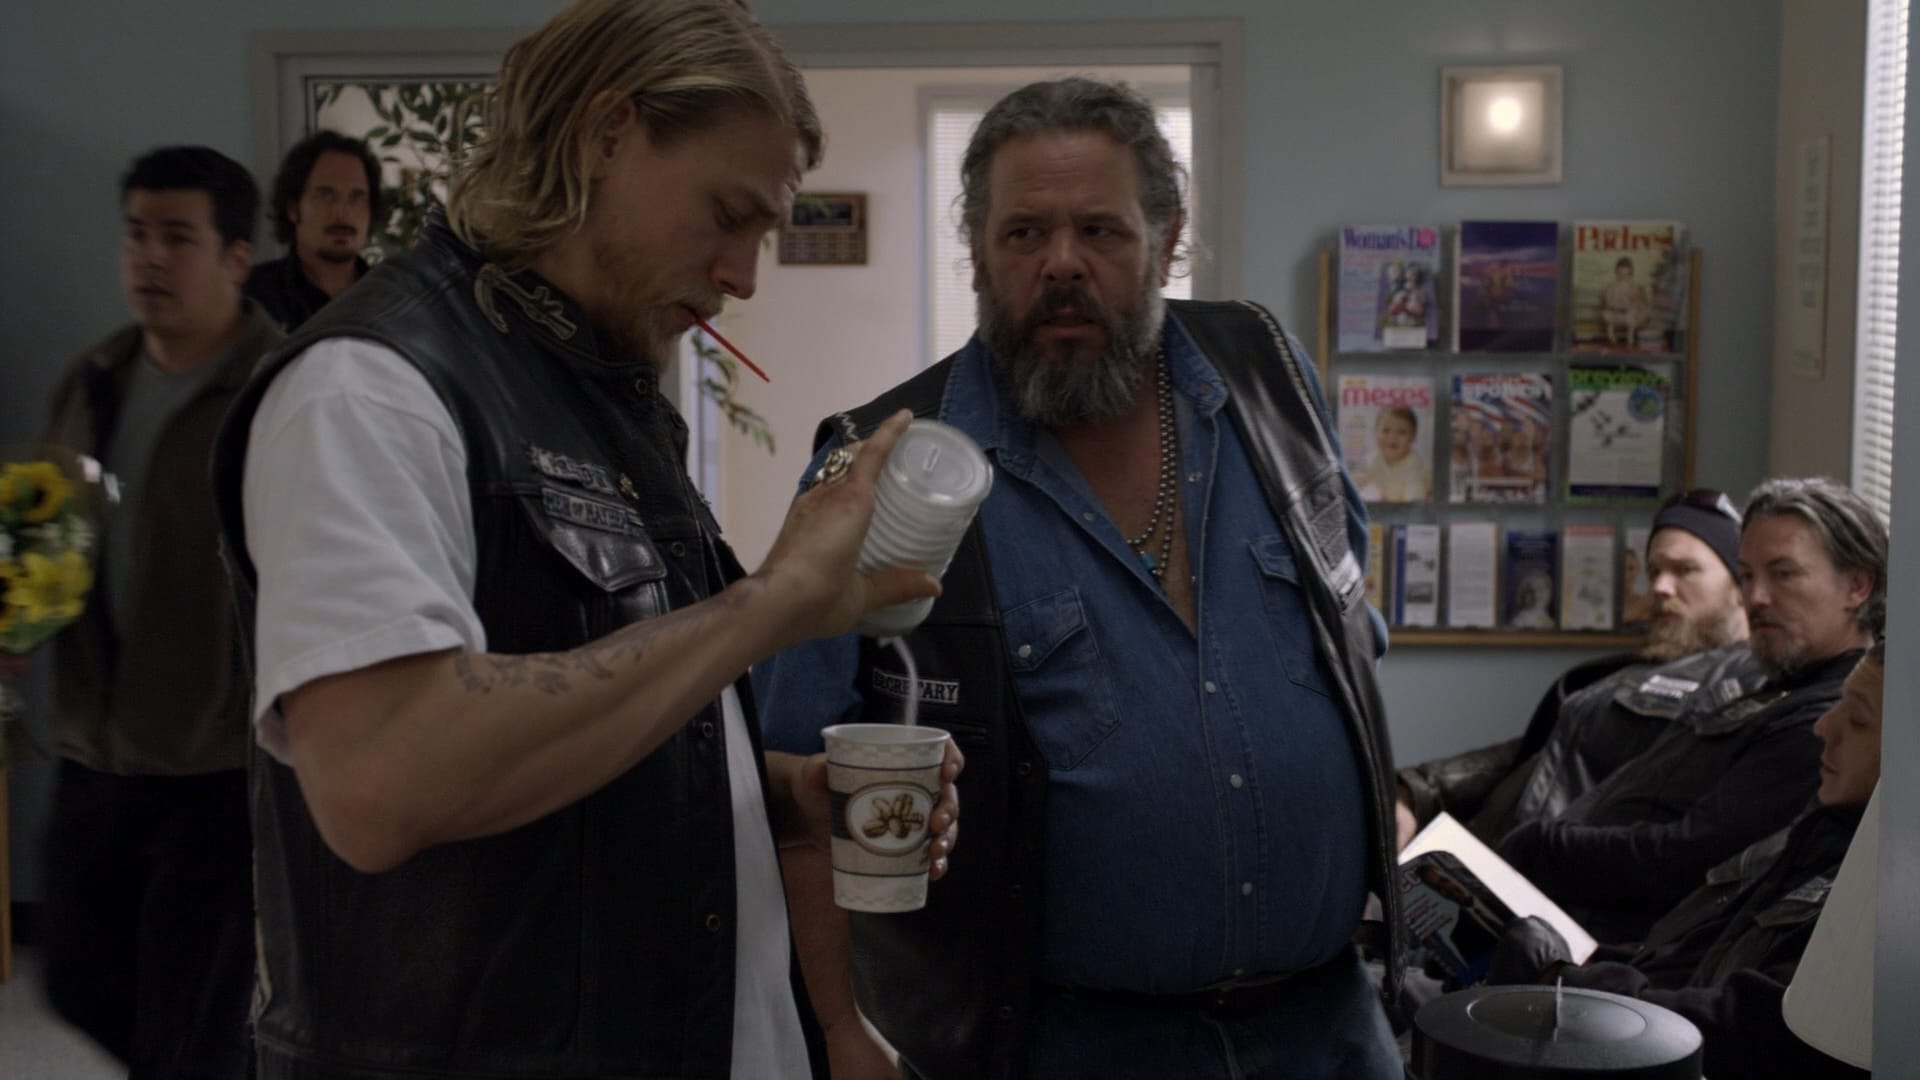 Sons of Anarchy Saison 3 Episode 5 streaming VF HD 2020 en